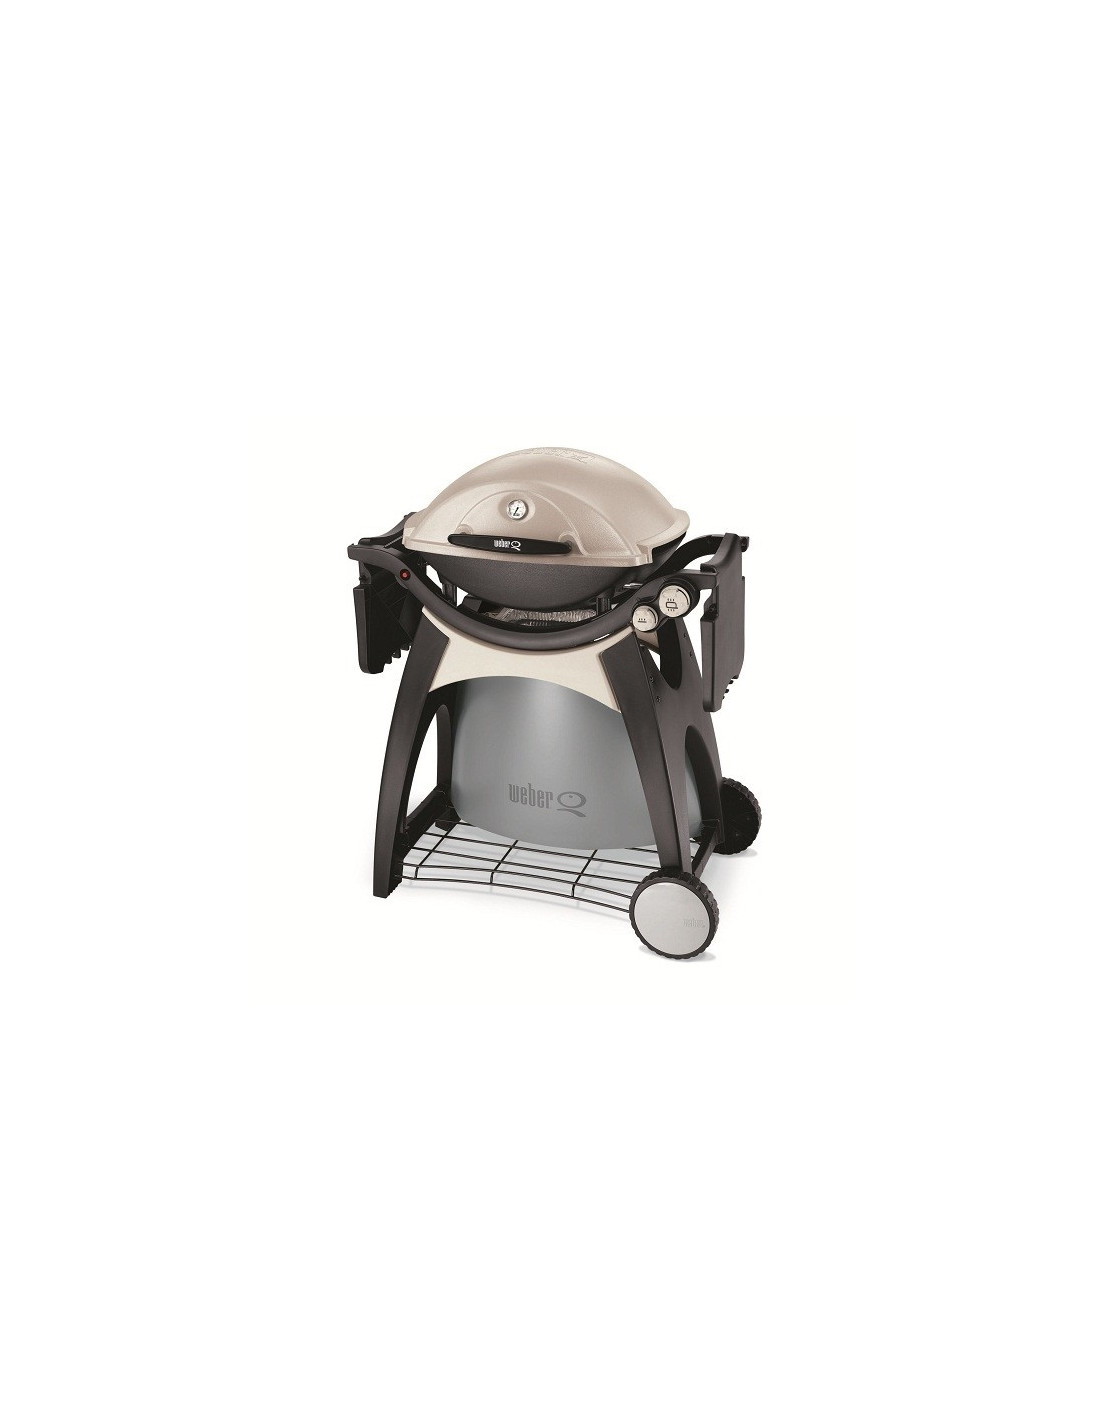 Barbecue gaz barbecue weber q300 blanc cr me - Barbecue weber a gaz ...